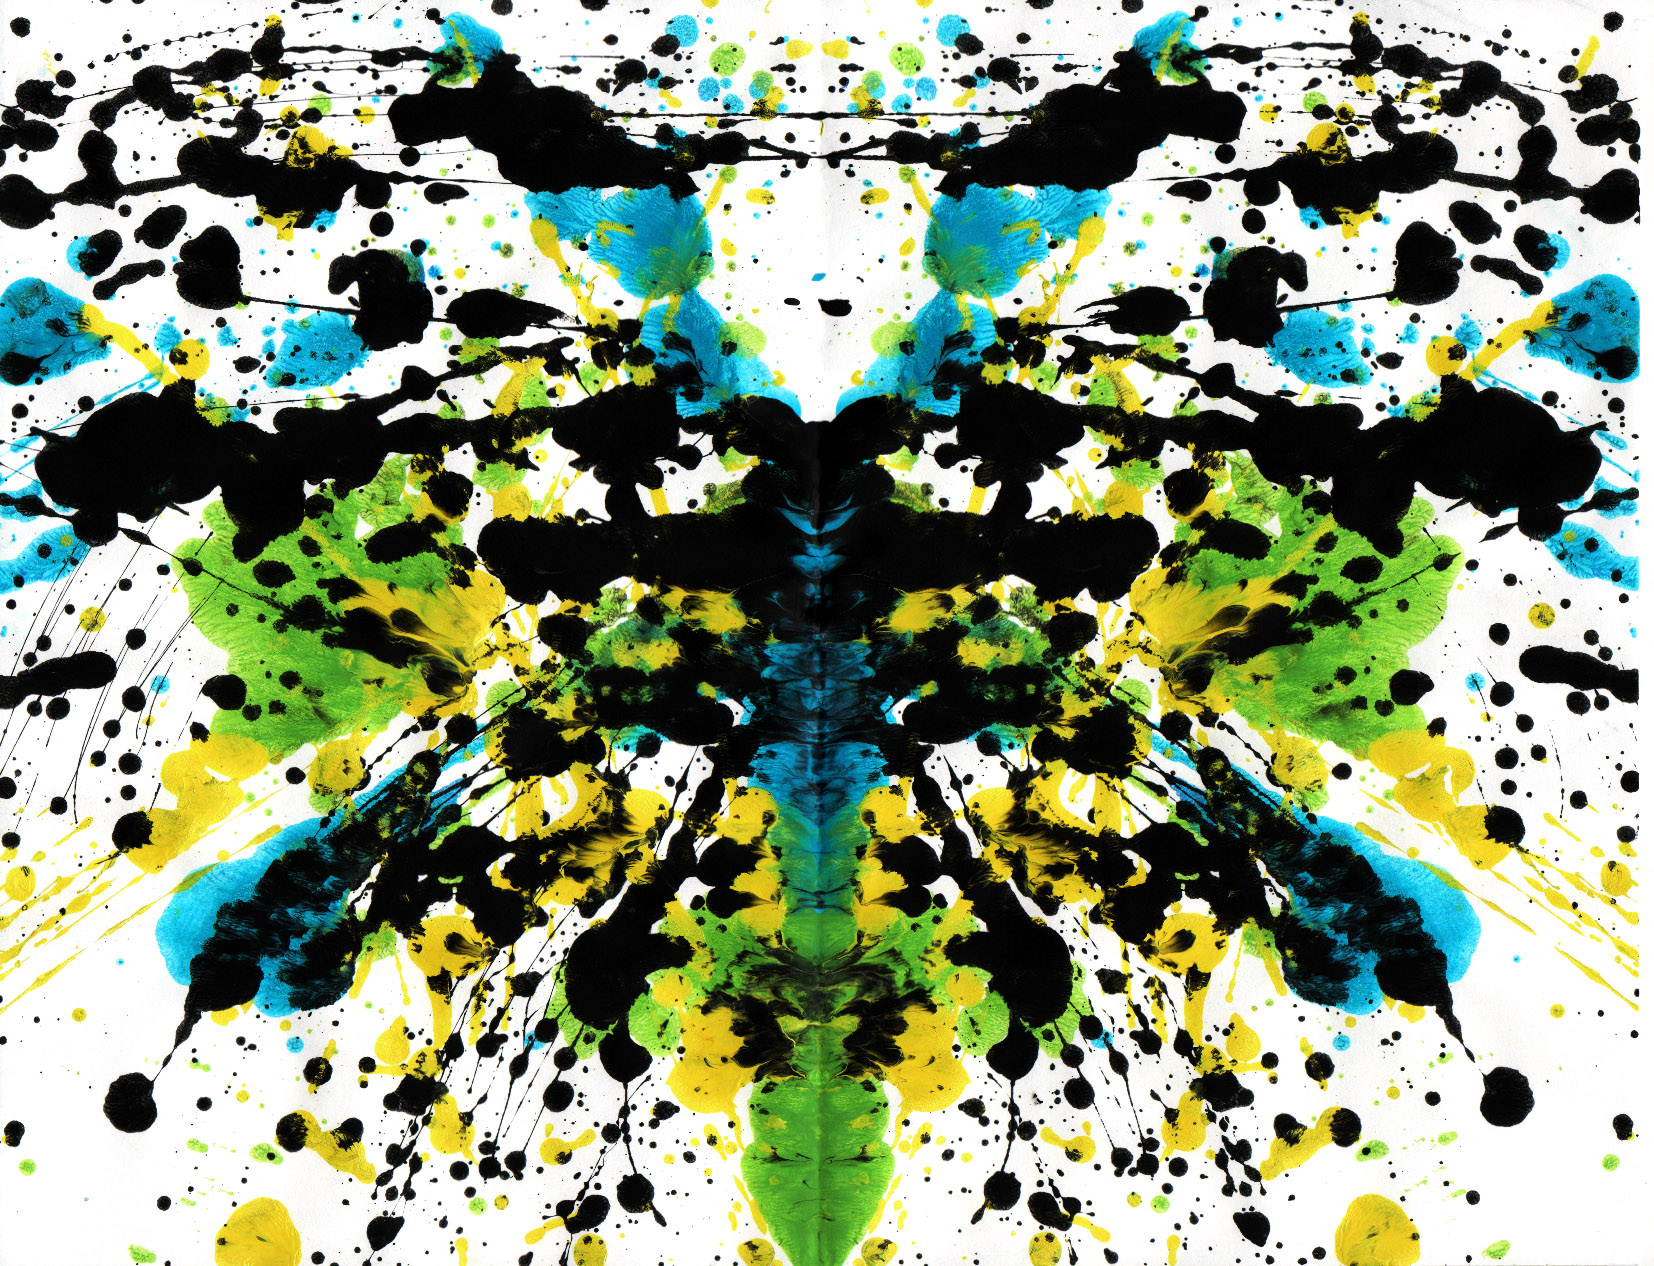 abstract paintings Rorschach test HD Wallpaper